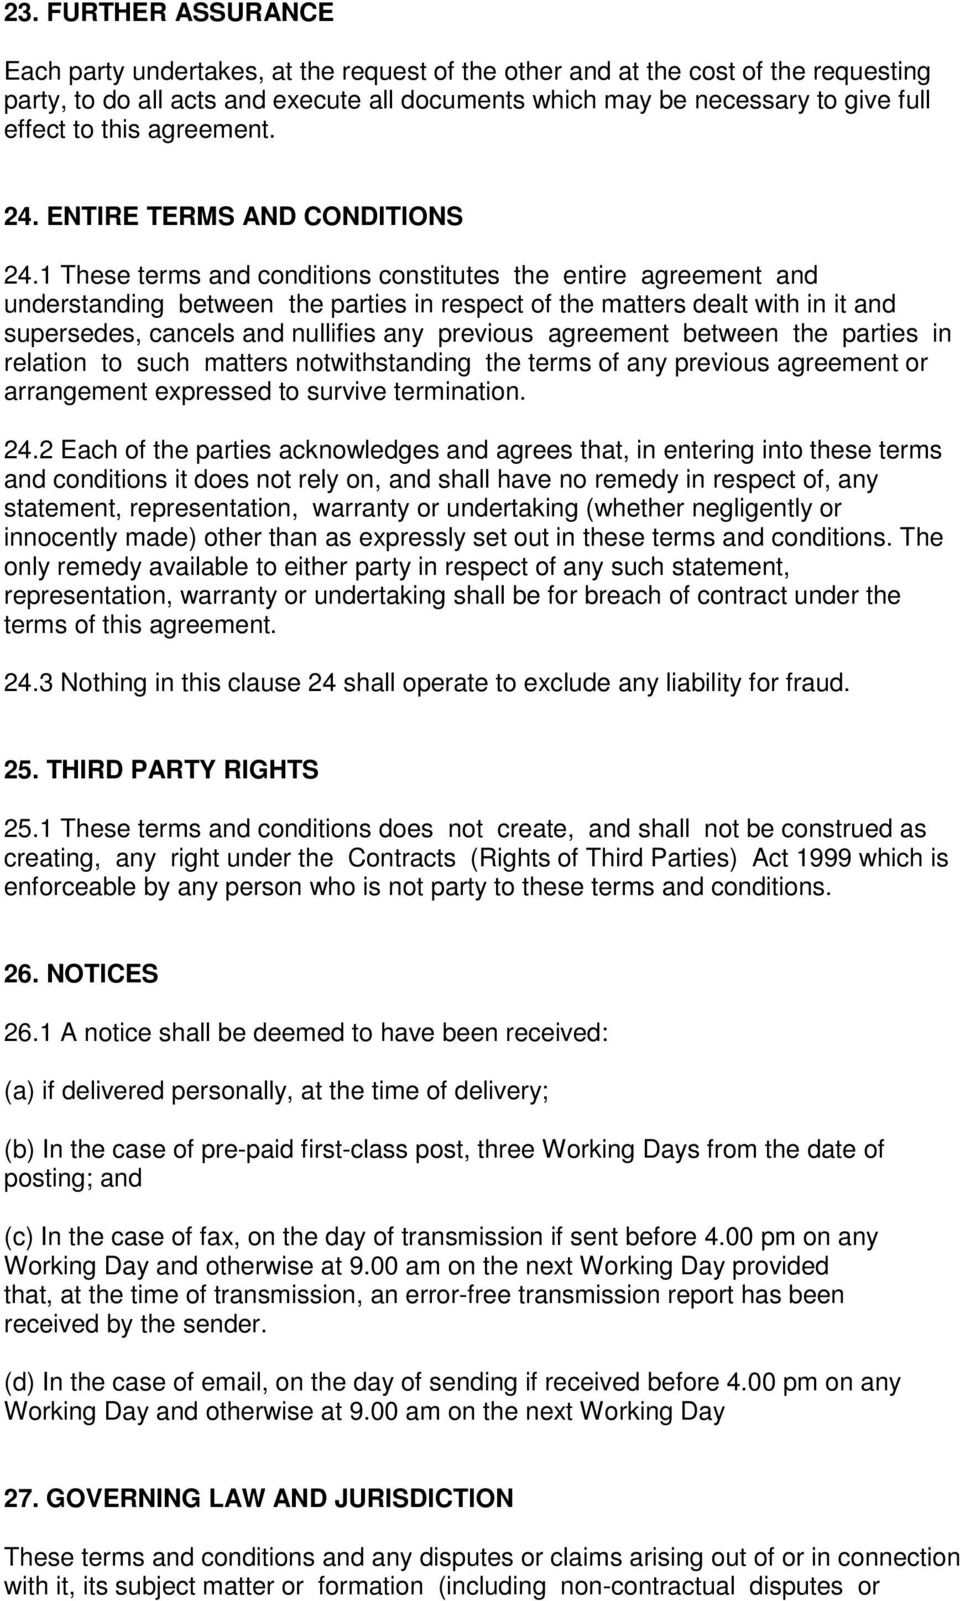 1 These terms and conditions constitutes the entire agreement and understanding between the parties in respect of the matters dealt with in it and supersedes, cancels and nullifies any previous